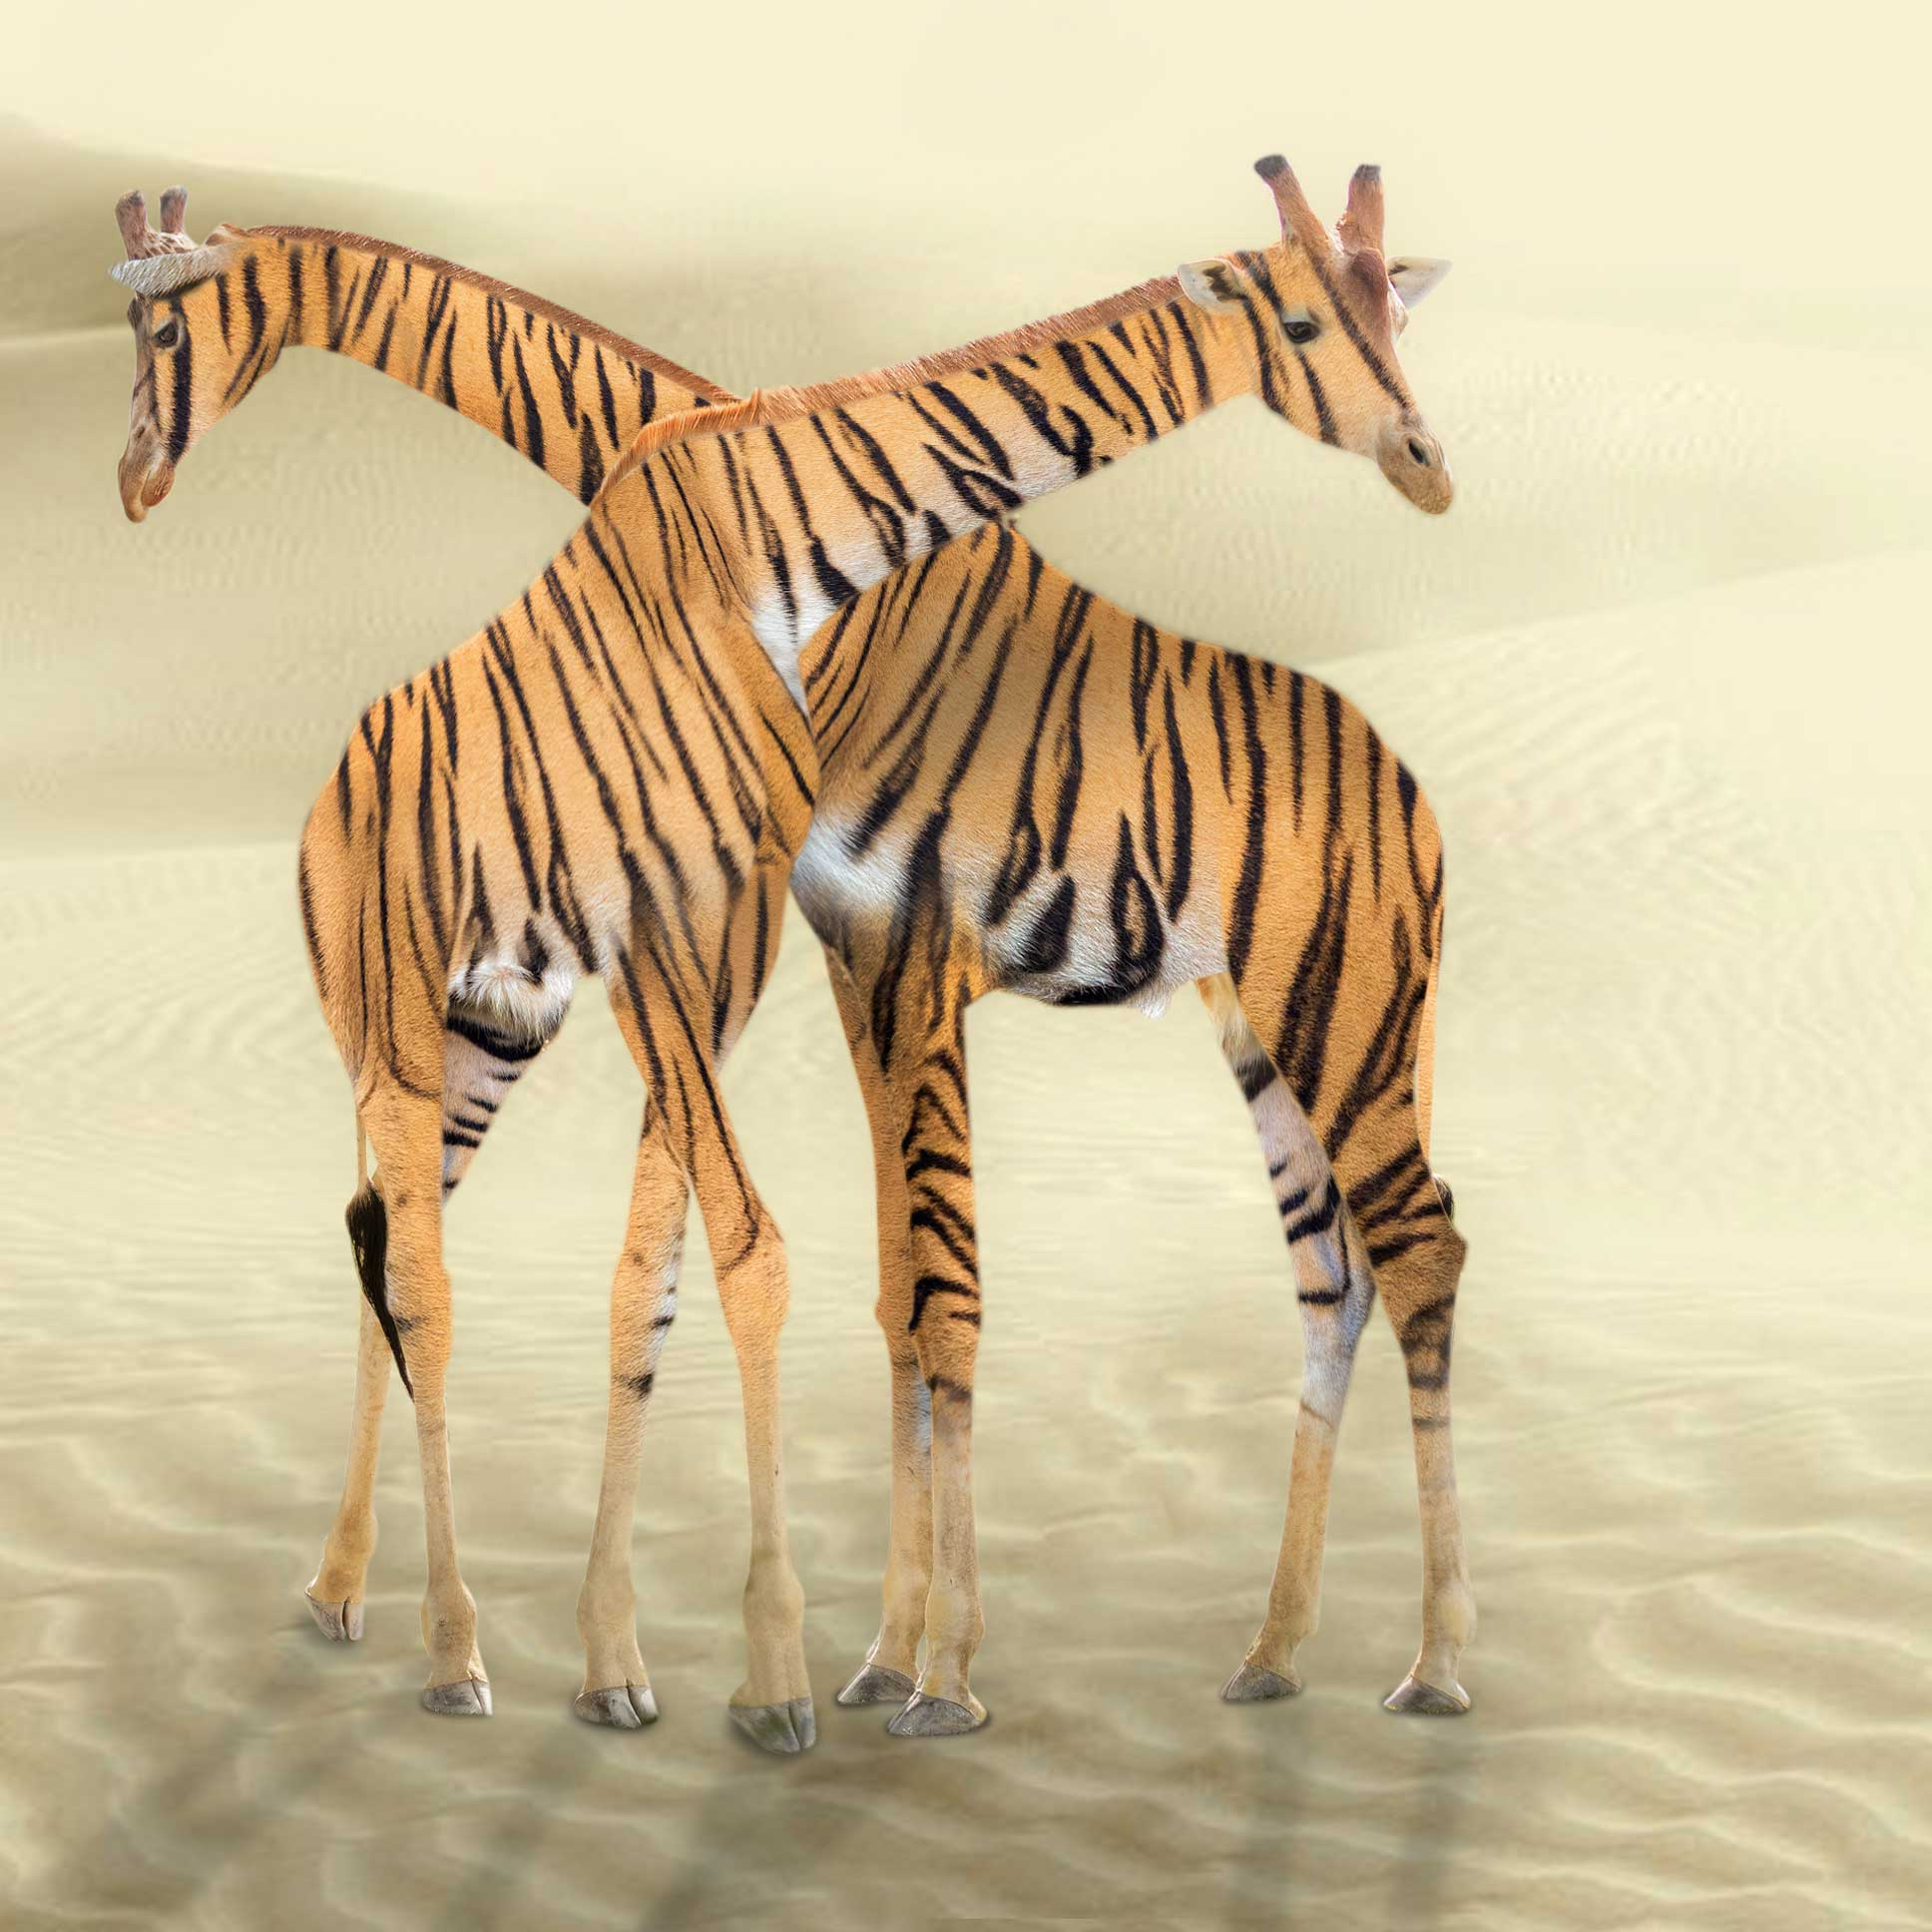 Br24 Composing: Photo of two giraffes with crossed necks and tiger fur texture in a desert landscape, after Composing